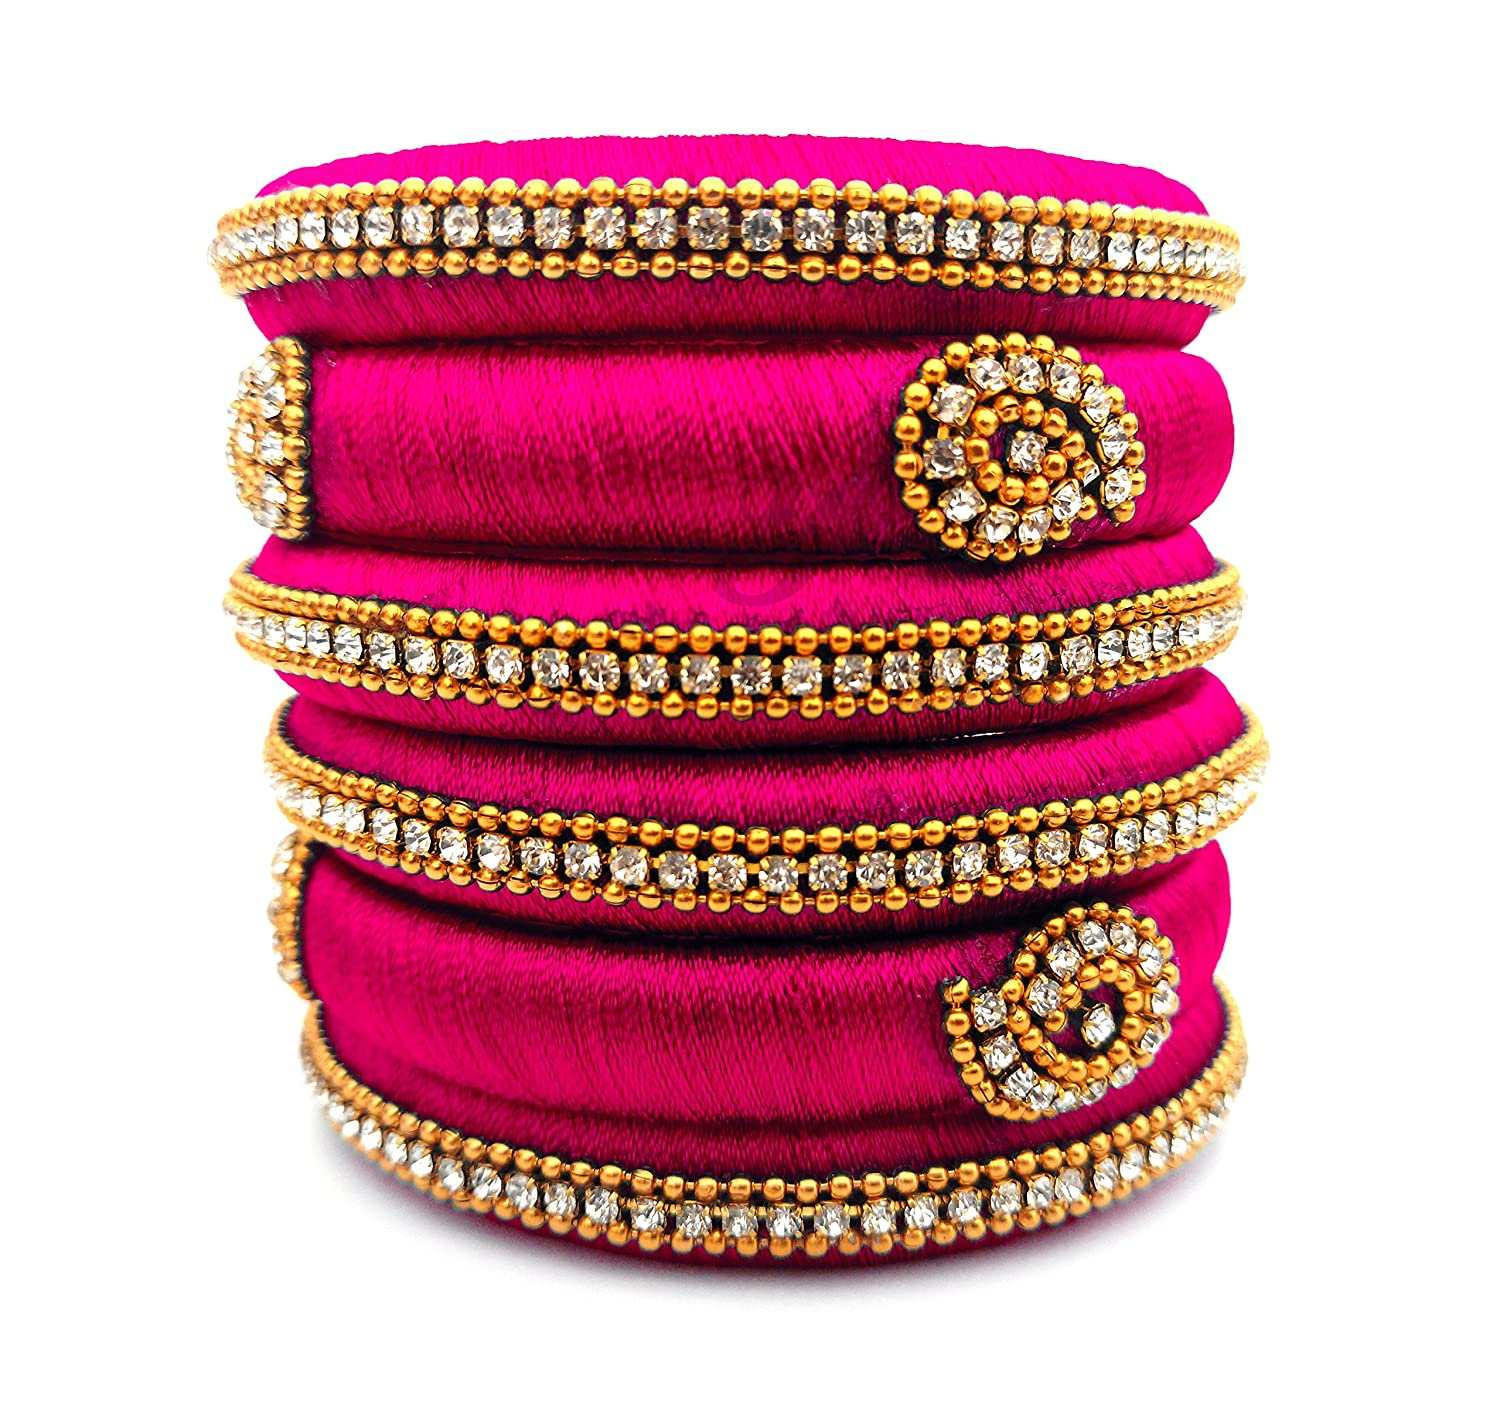 designer how home at to tutorial silk make bangles youtube watch thread